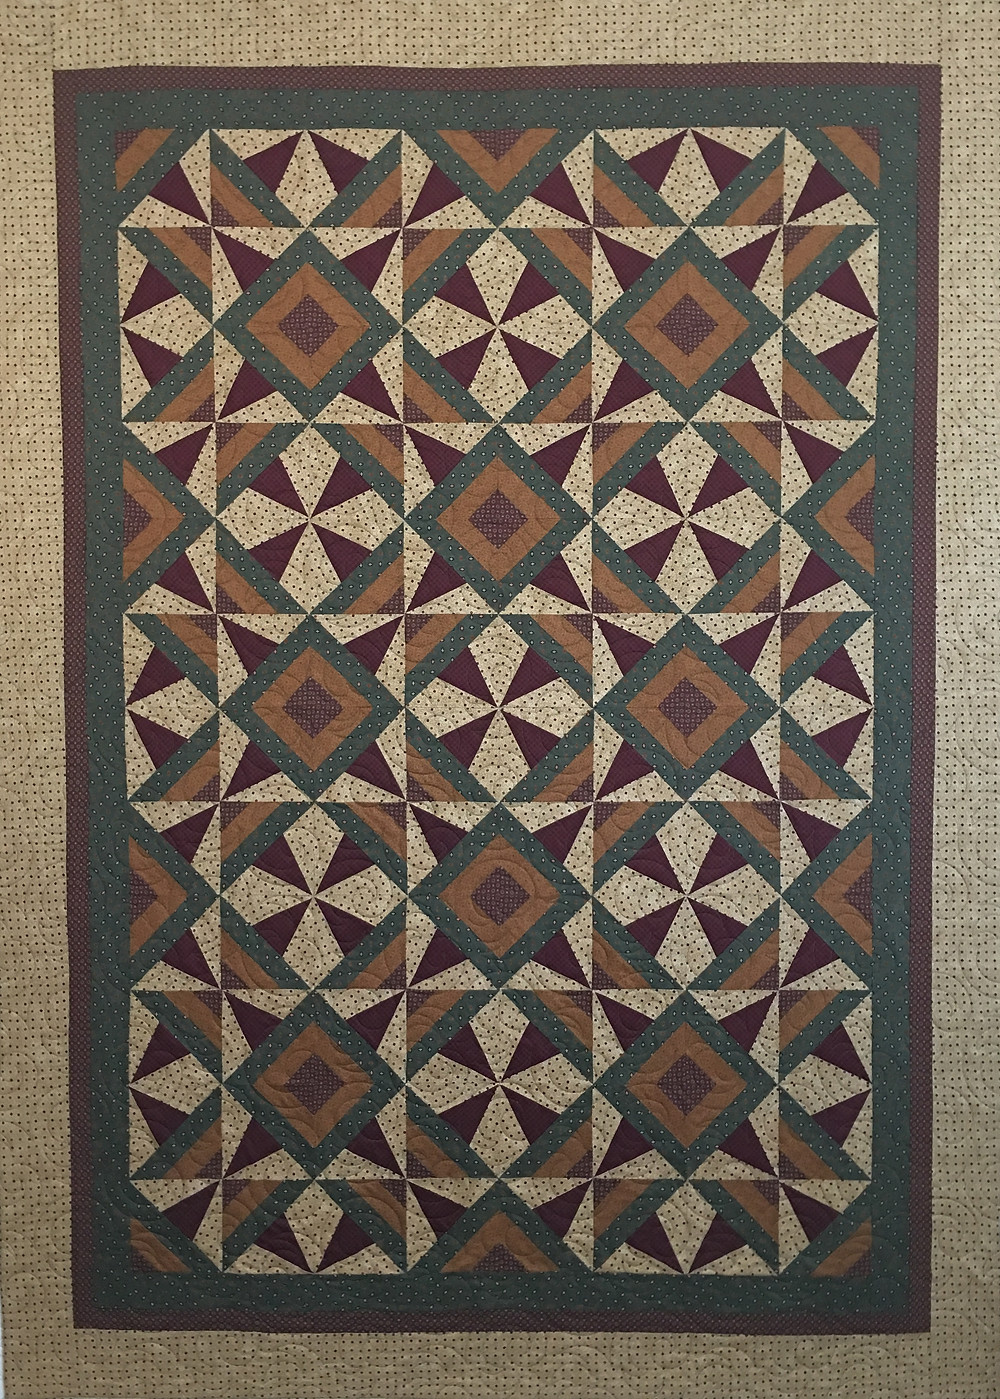 Aline Wild Block in timeless treasures fabric quilt